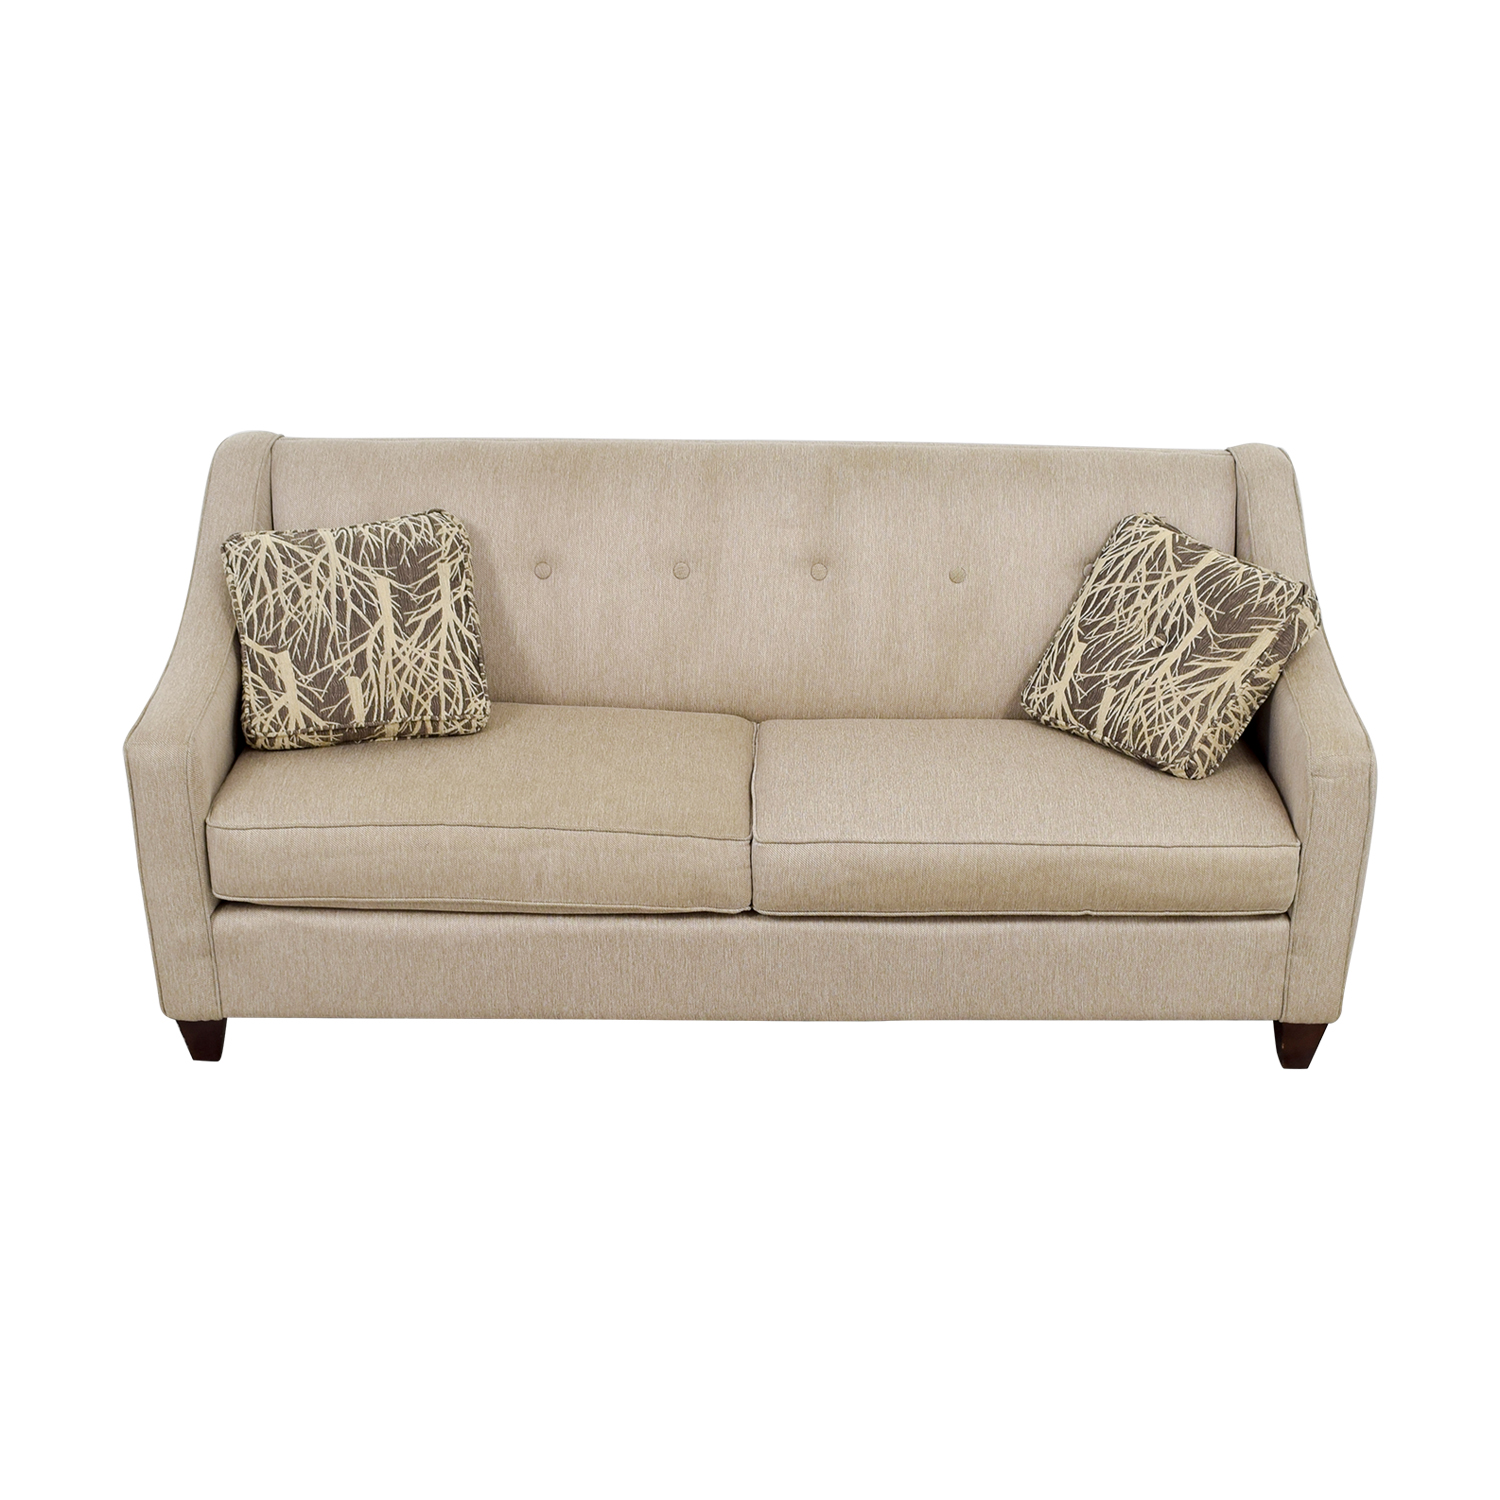 Star furniture sofas star furniture sofas hereo sofa thesofa for Star furniture